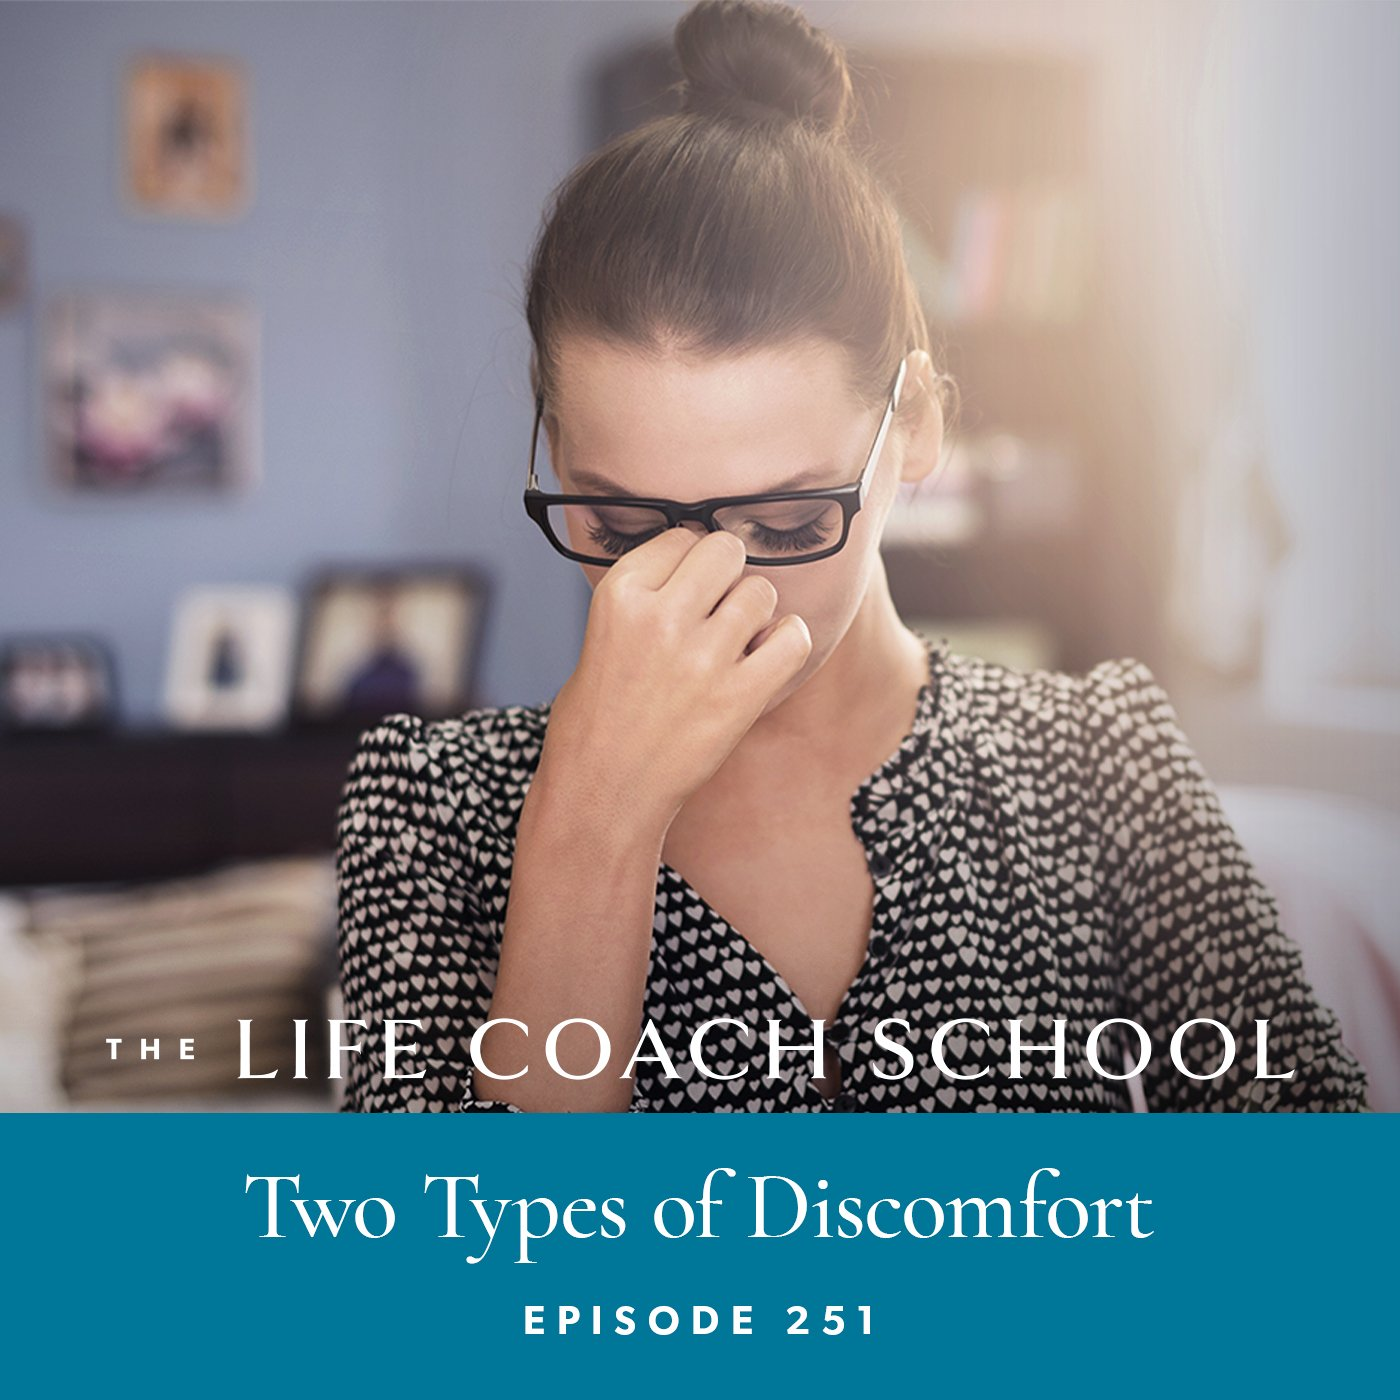 The Life Coach School Podcast with Brooke Castillo | Episode 251 | Two Types of Discomfort